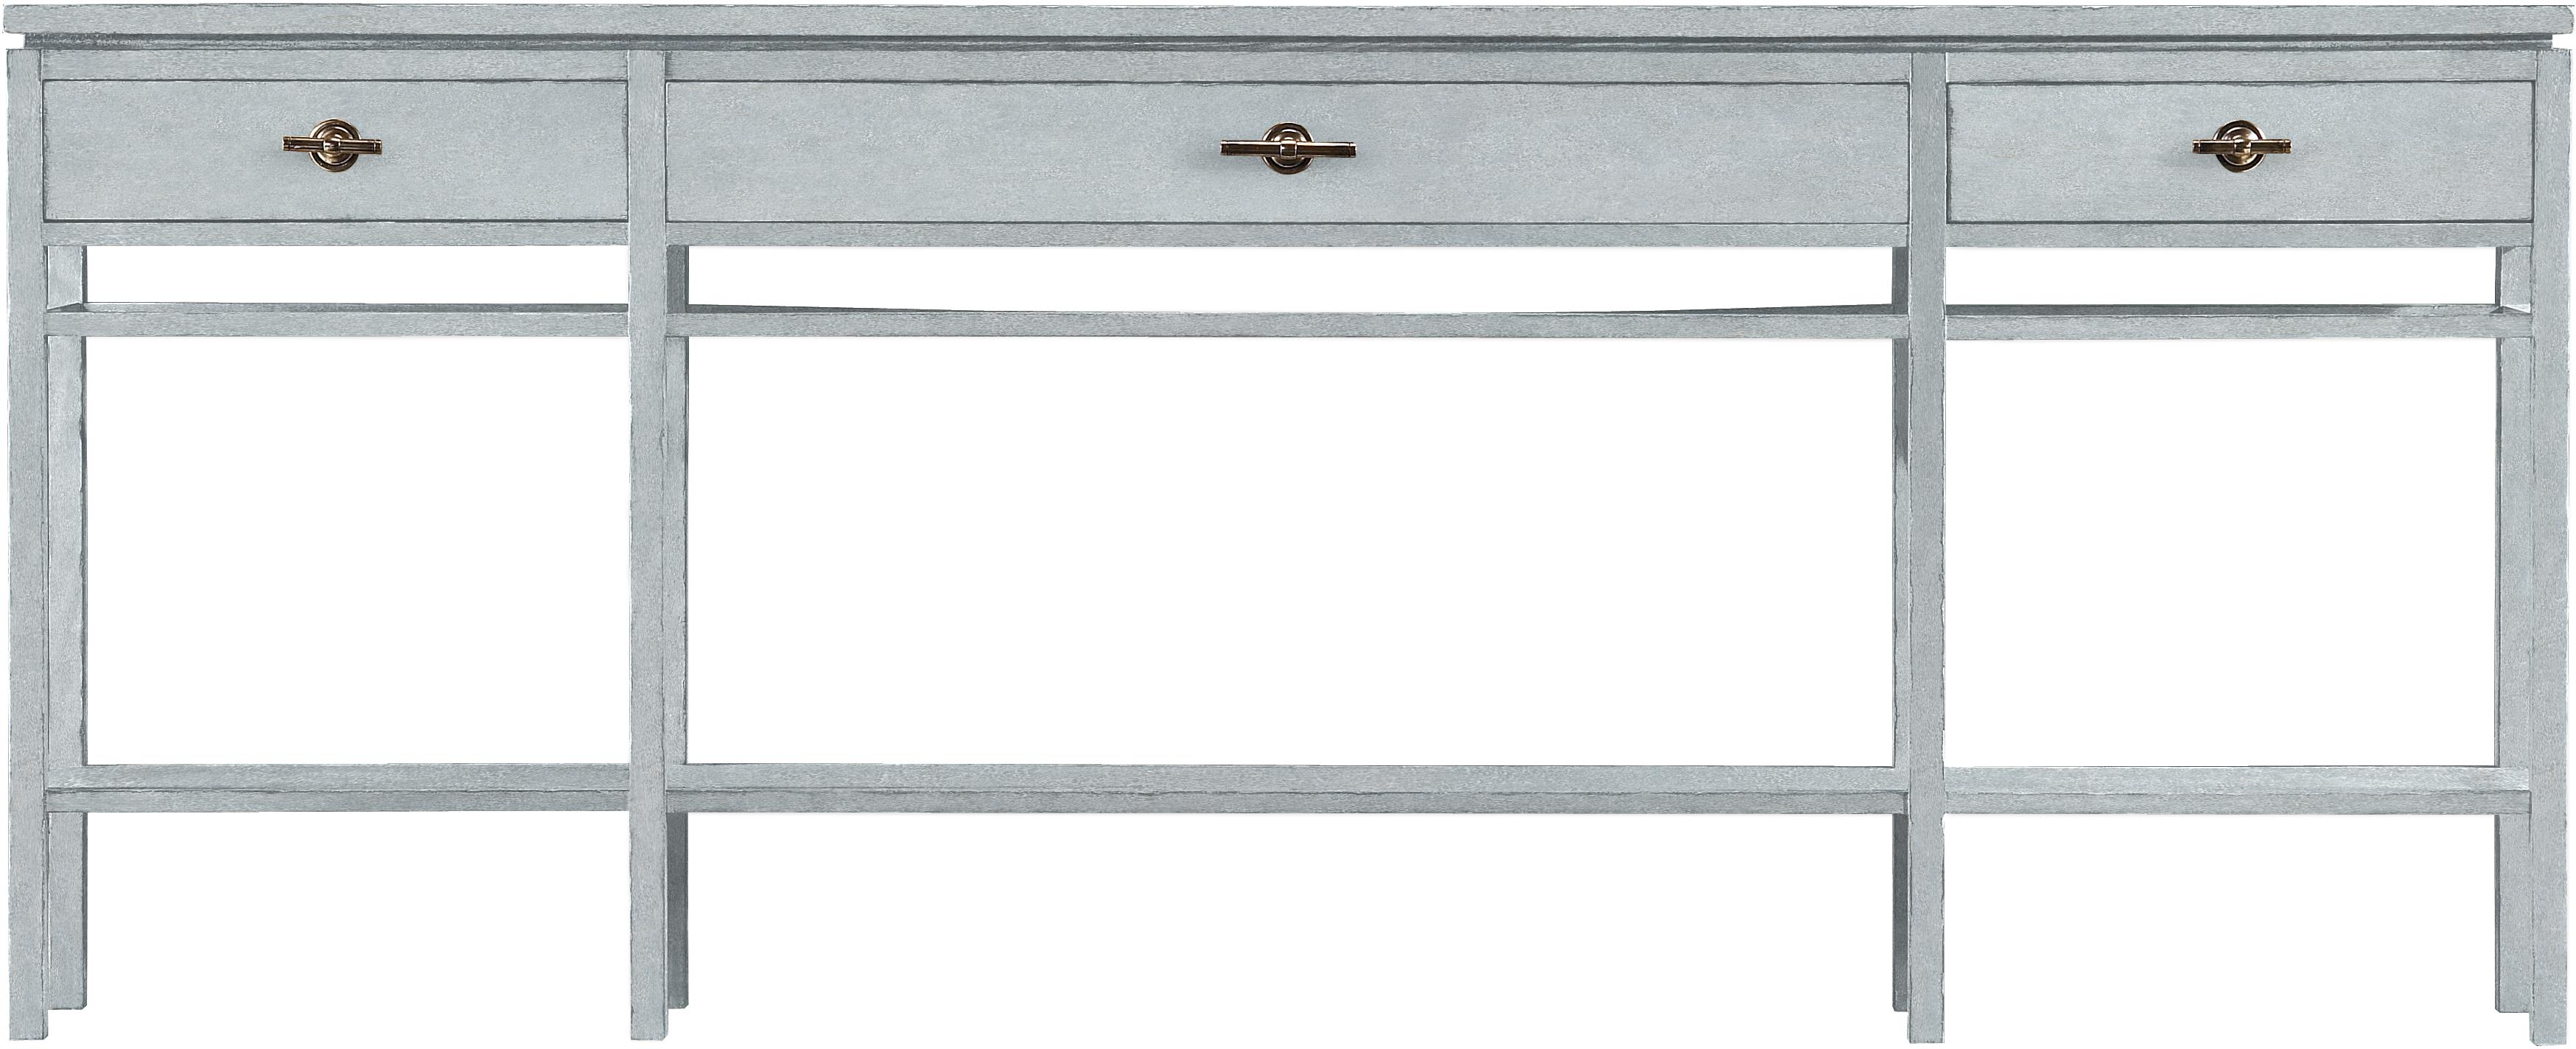 Stanley Furniture Coastal Living Resort Palisades Sofa Table - Item Number: 062-H5-05